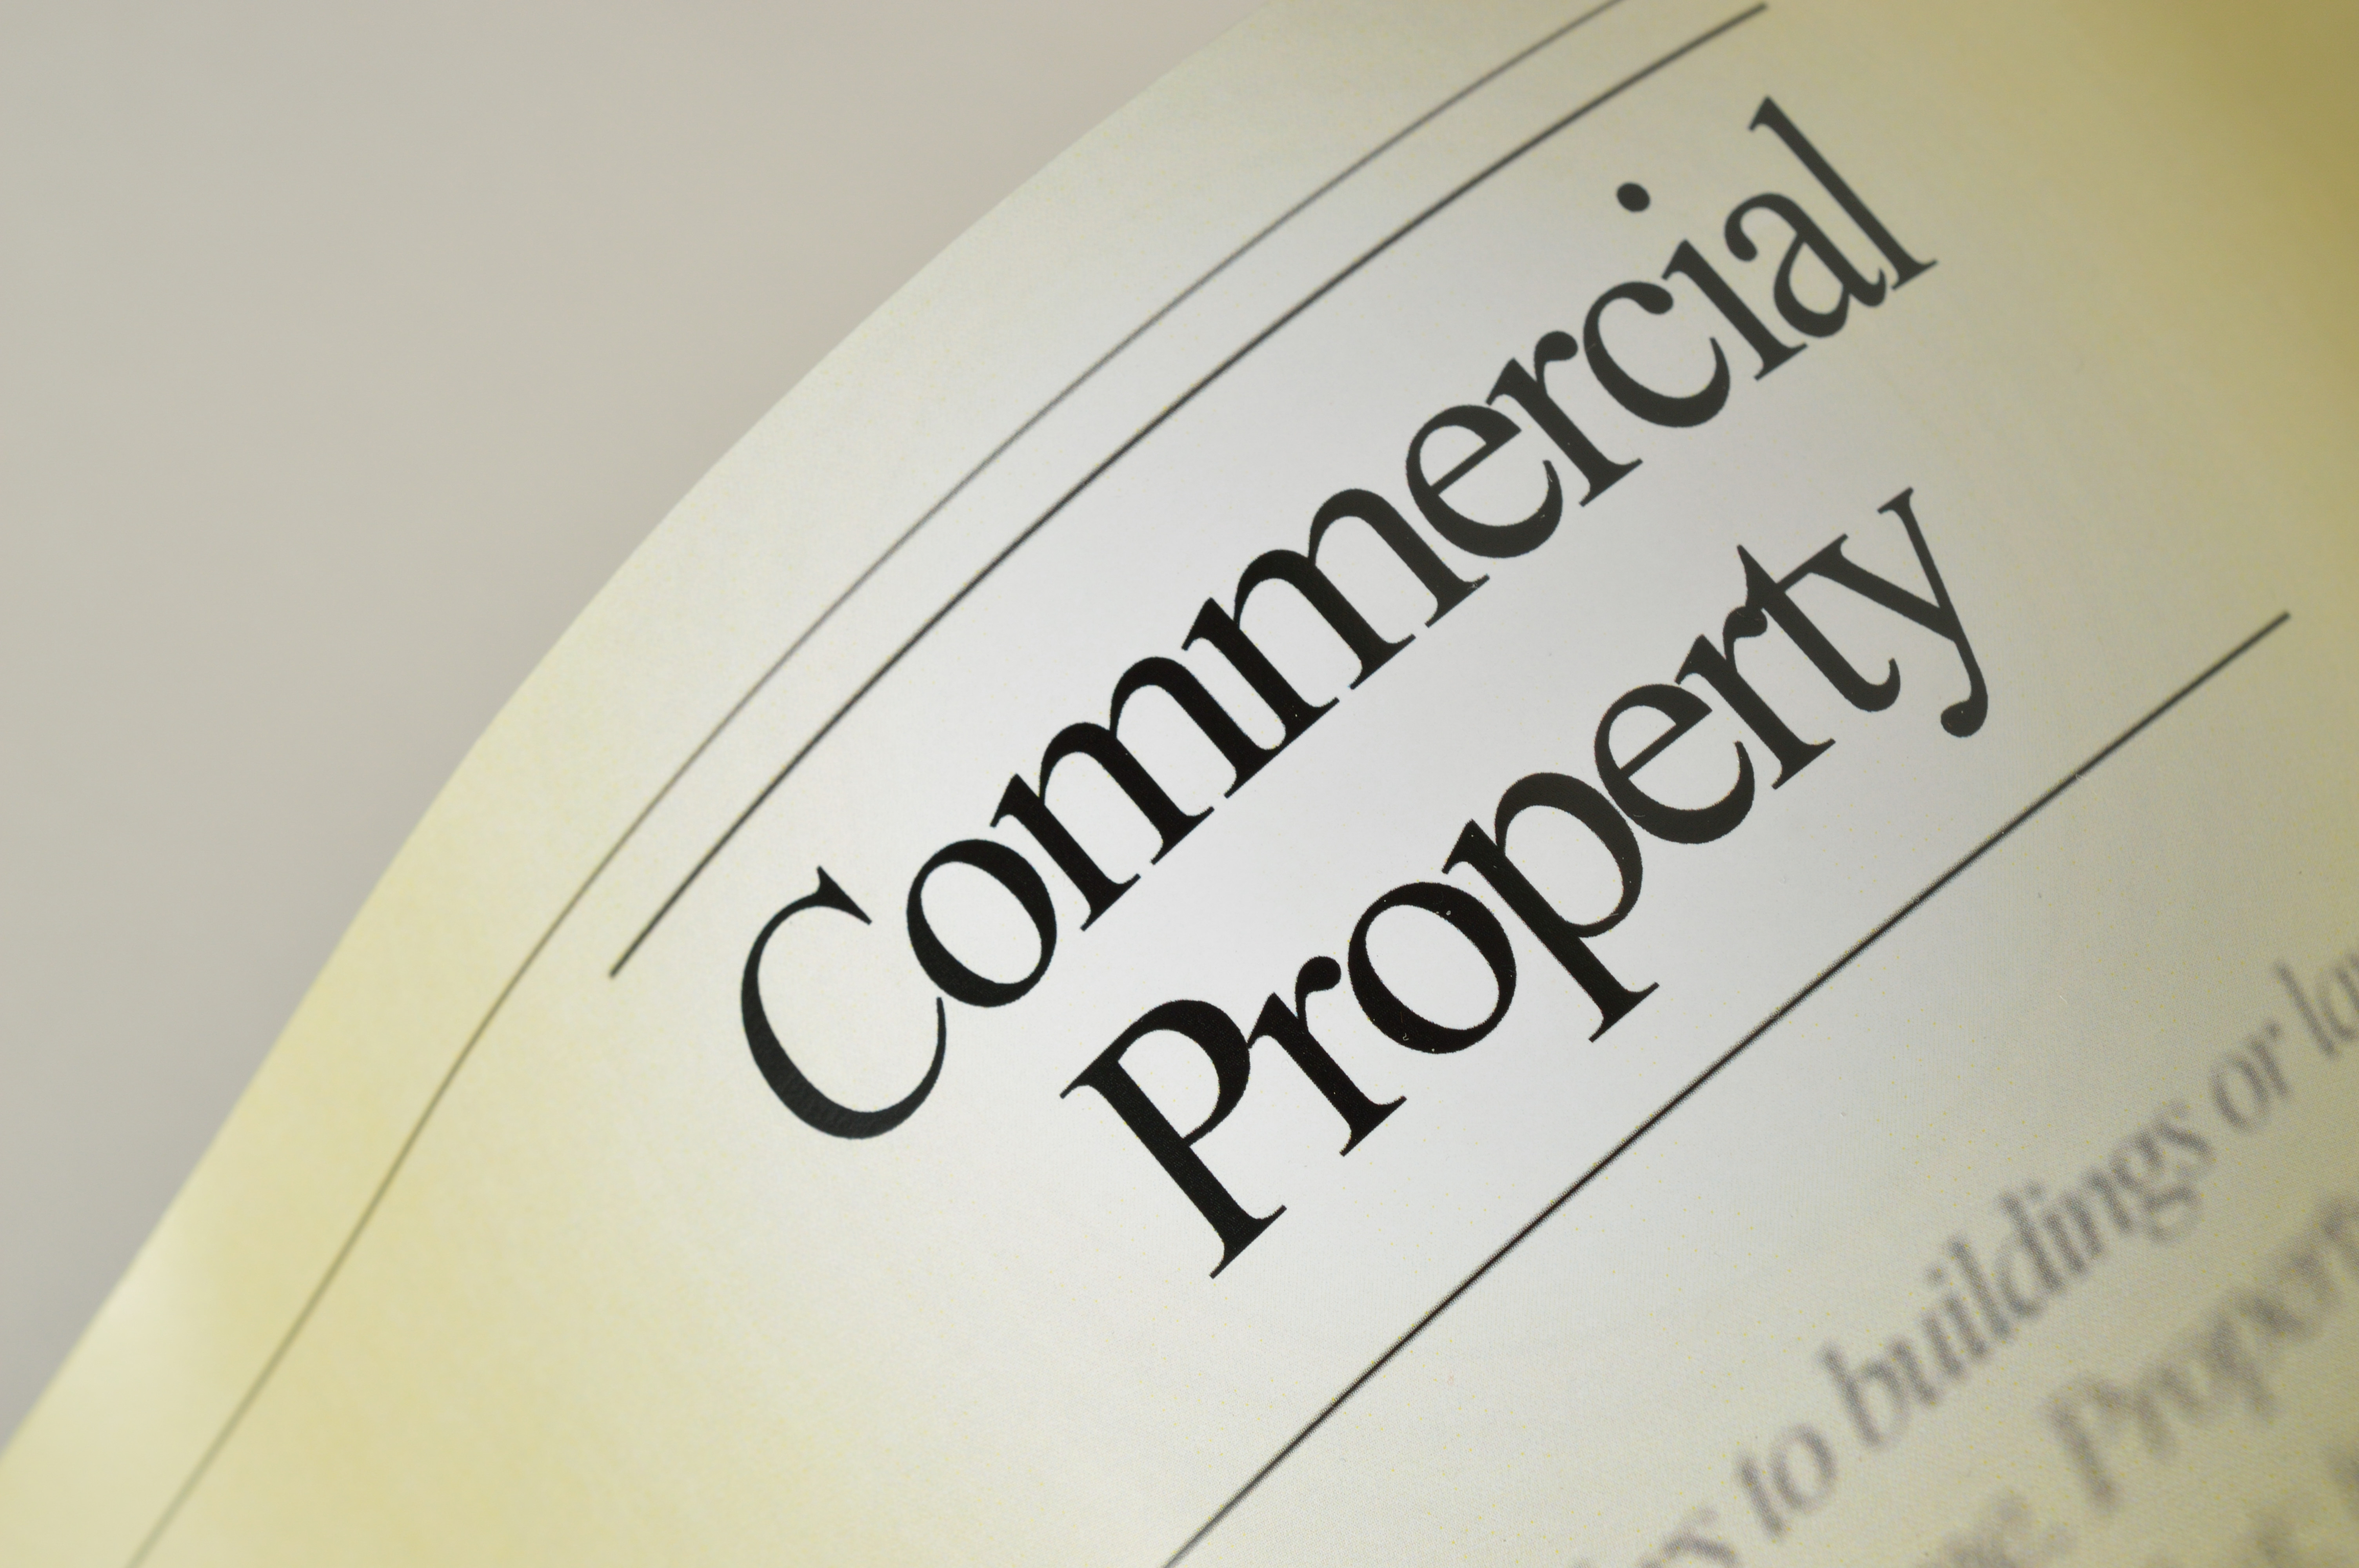 When taking on commercial property, consider factors such as cash flow, the area, and regulatory requirements